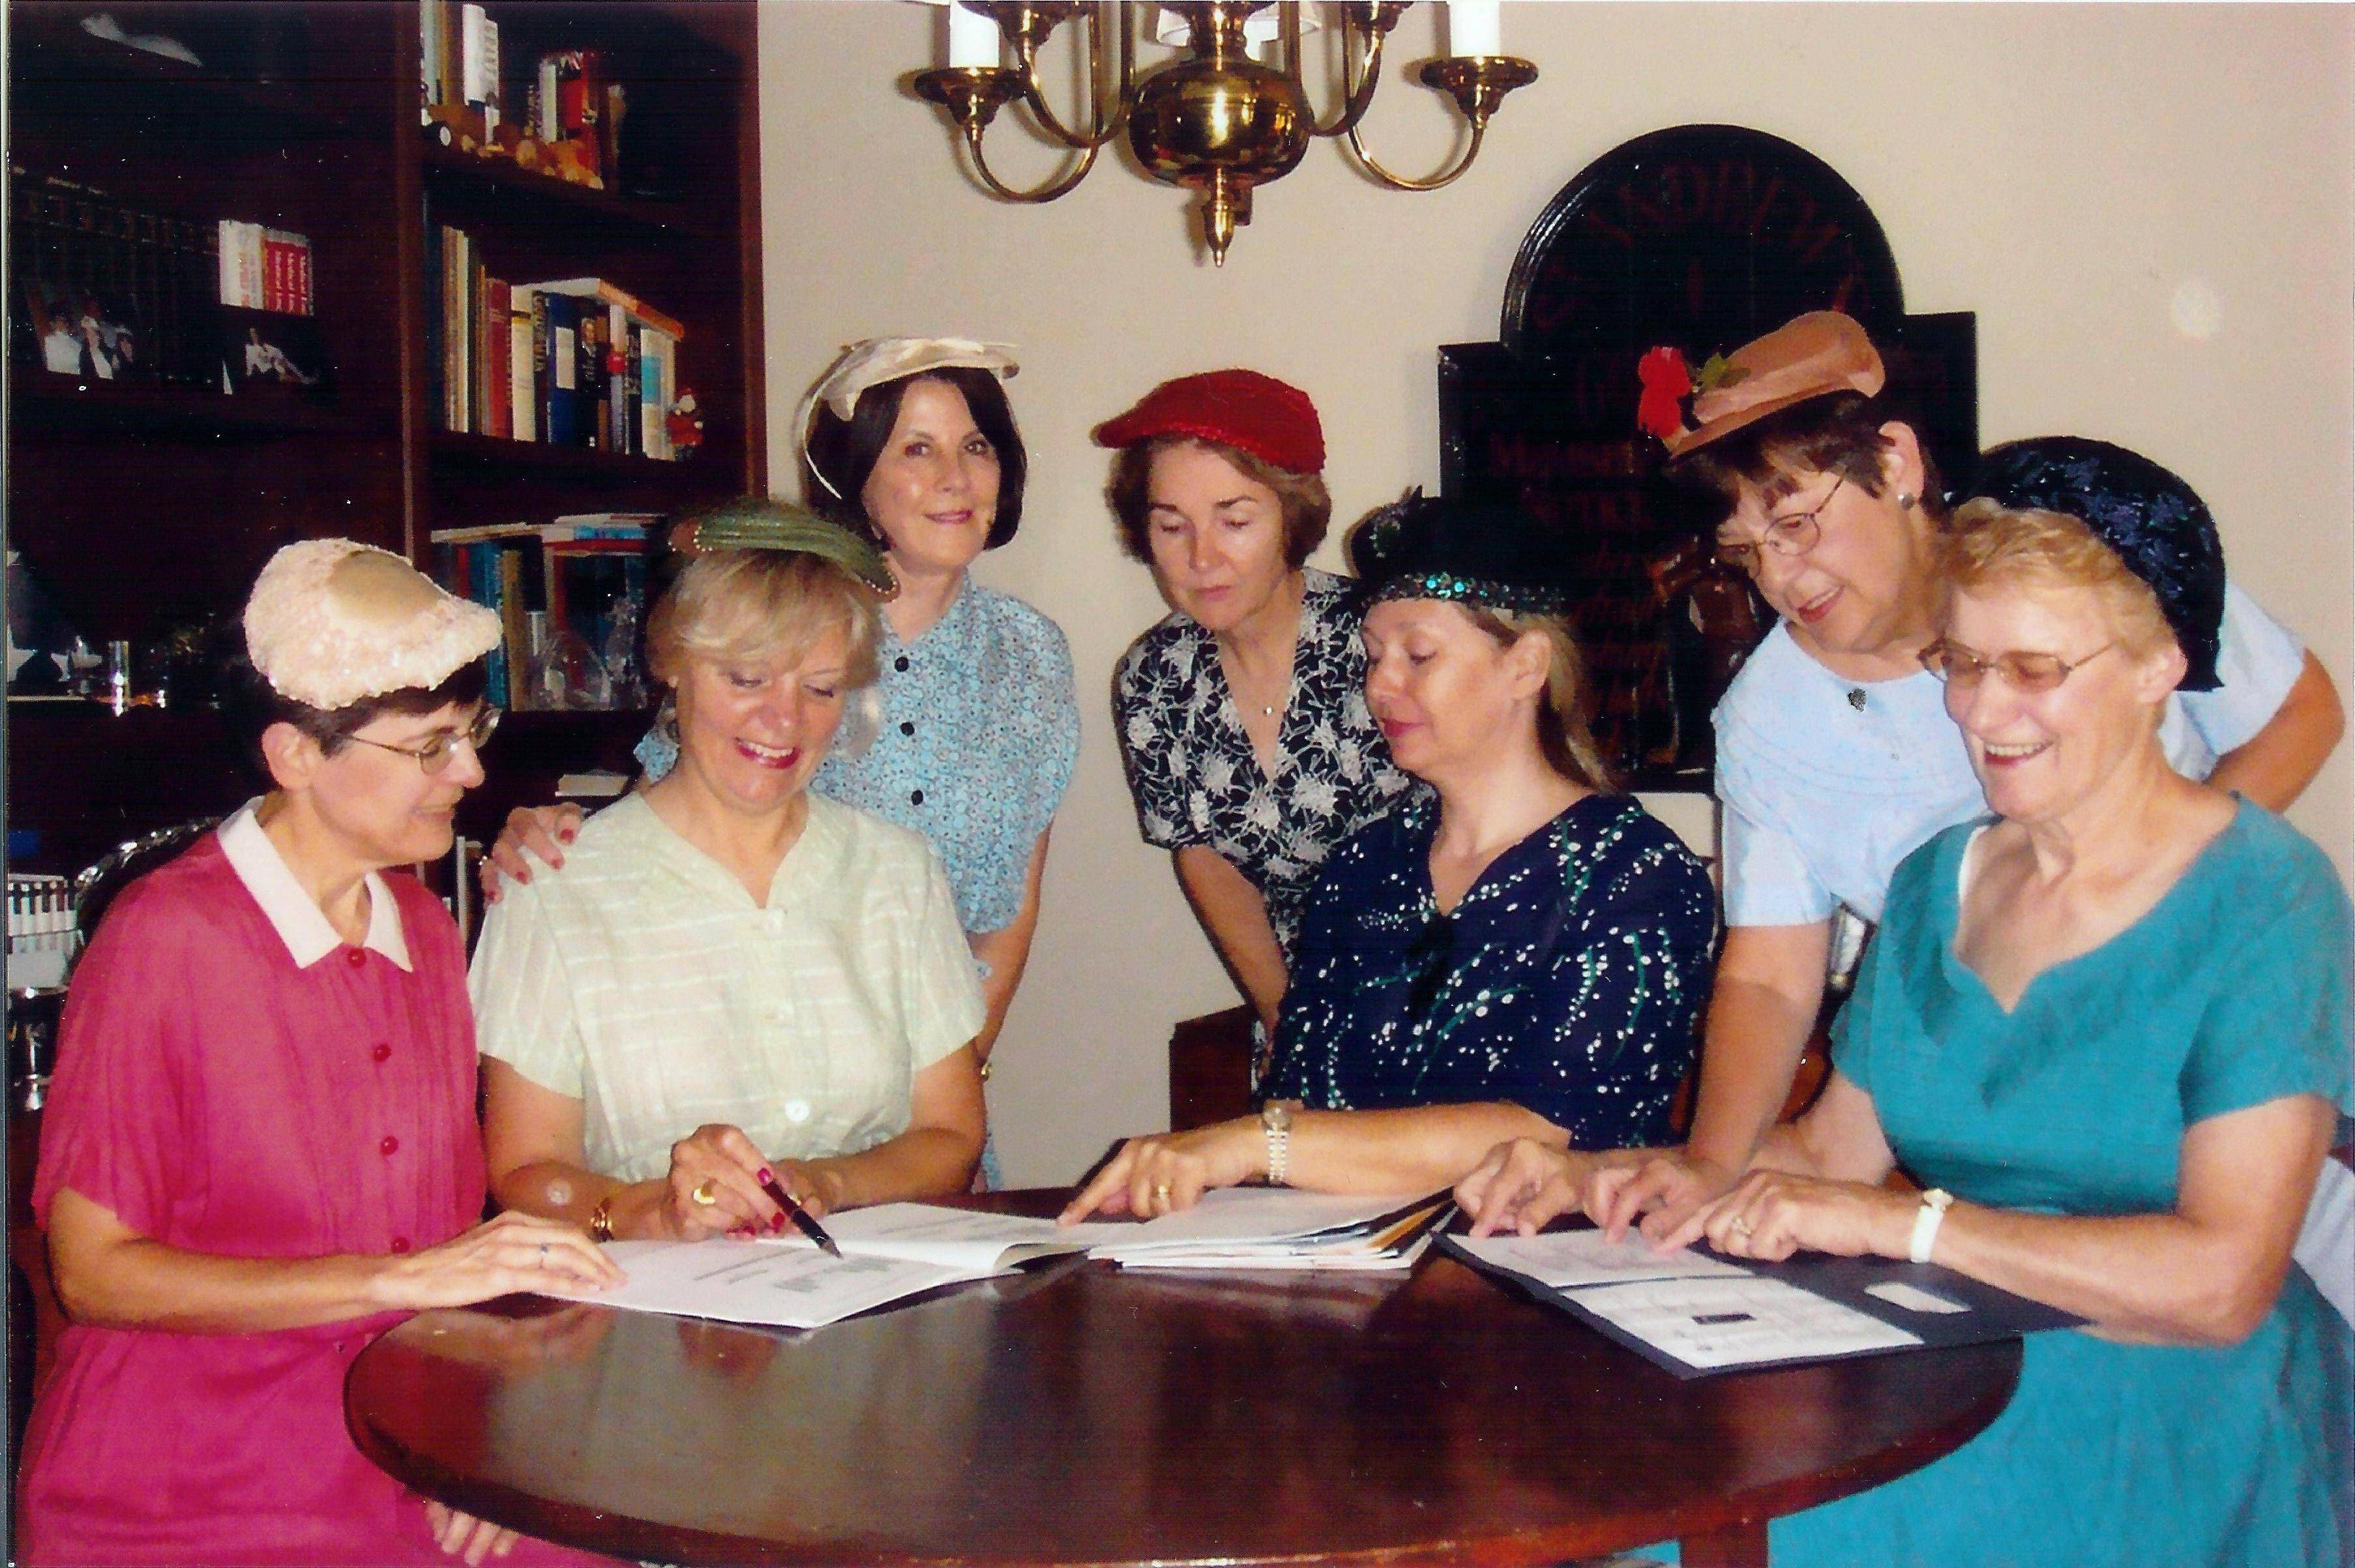 Committee members Linda Osikowicz, Sherrie Anuskewicz, Pam Larsen, Mary Mellon, Nancy Koutsis, Carolyn Schneider, and Norma Jung-Stein pay are dressed to match the historical period of the early years of the Barrington United Methodist Church Rummage Sale.  Not pictured:  Sandy Starnes and Mary Williams.